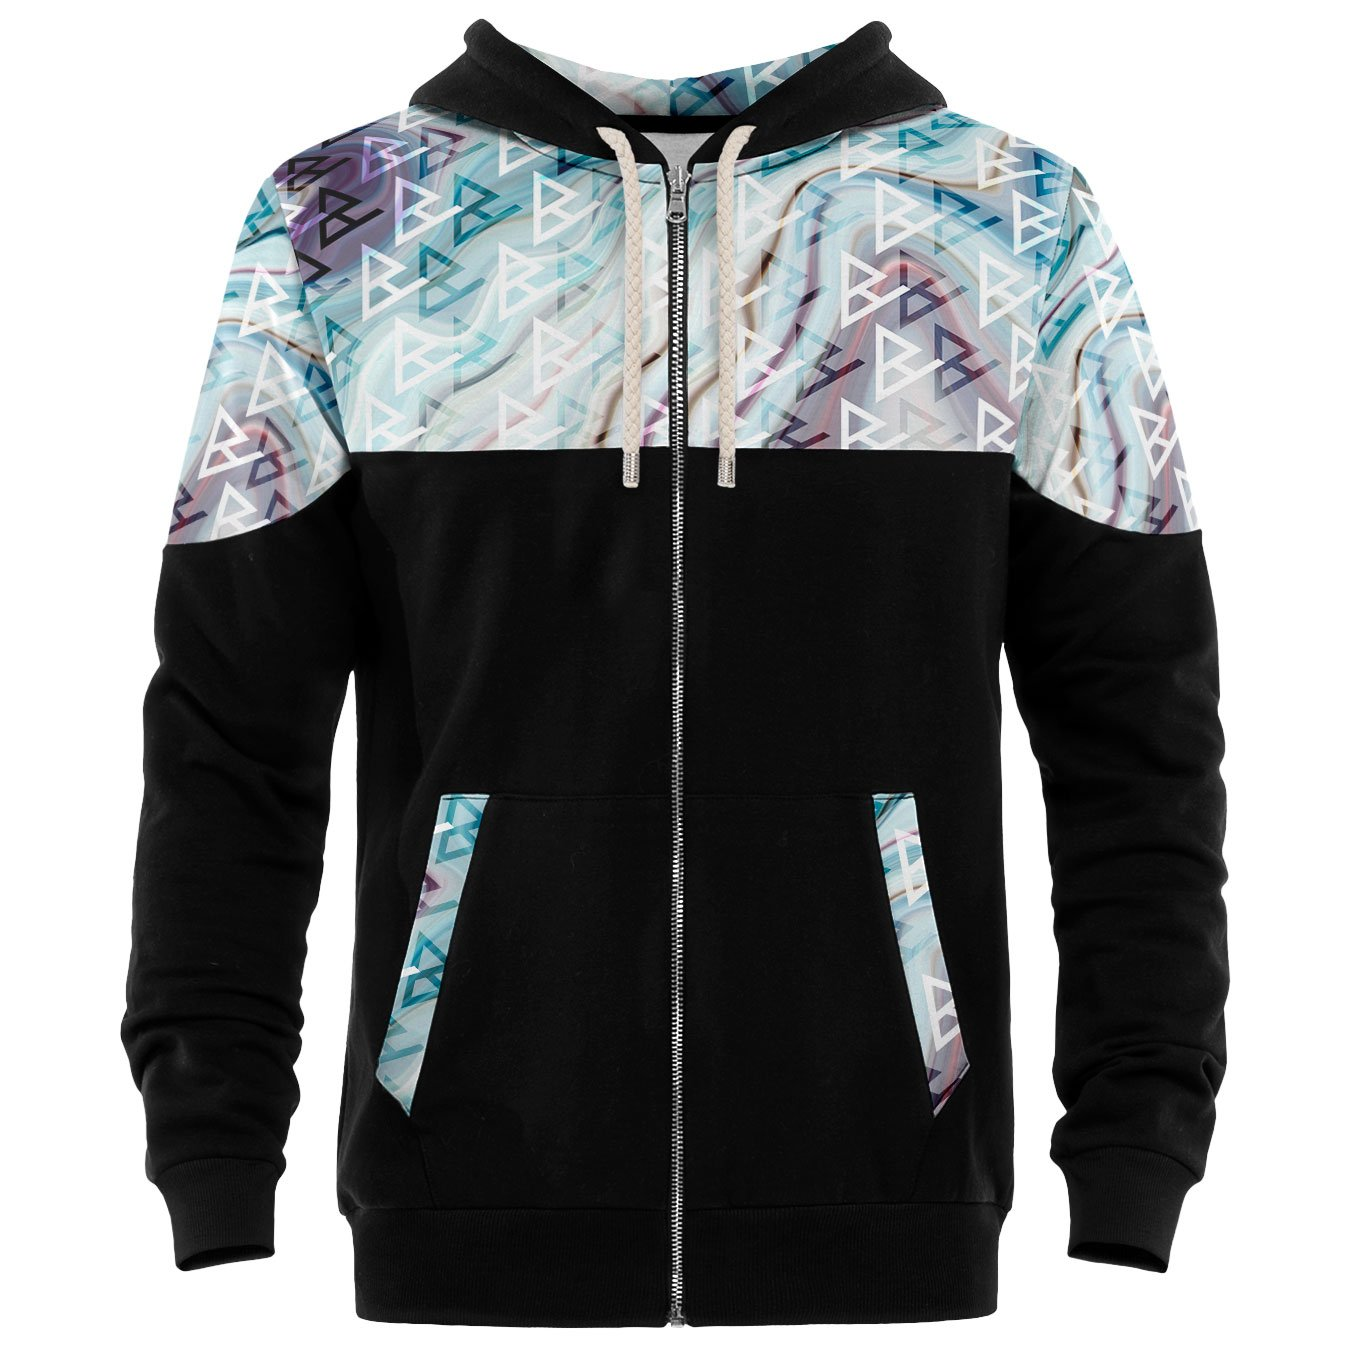 Blowhammer - Zip Up Kapuzenpullover Herren - Candy Galaxy ZH